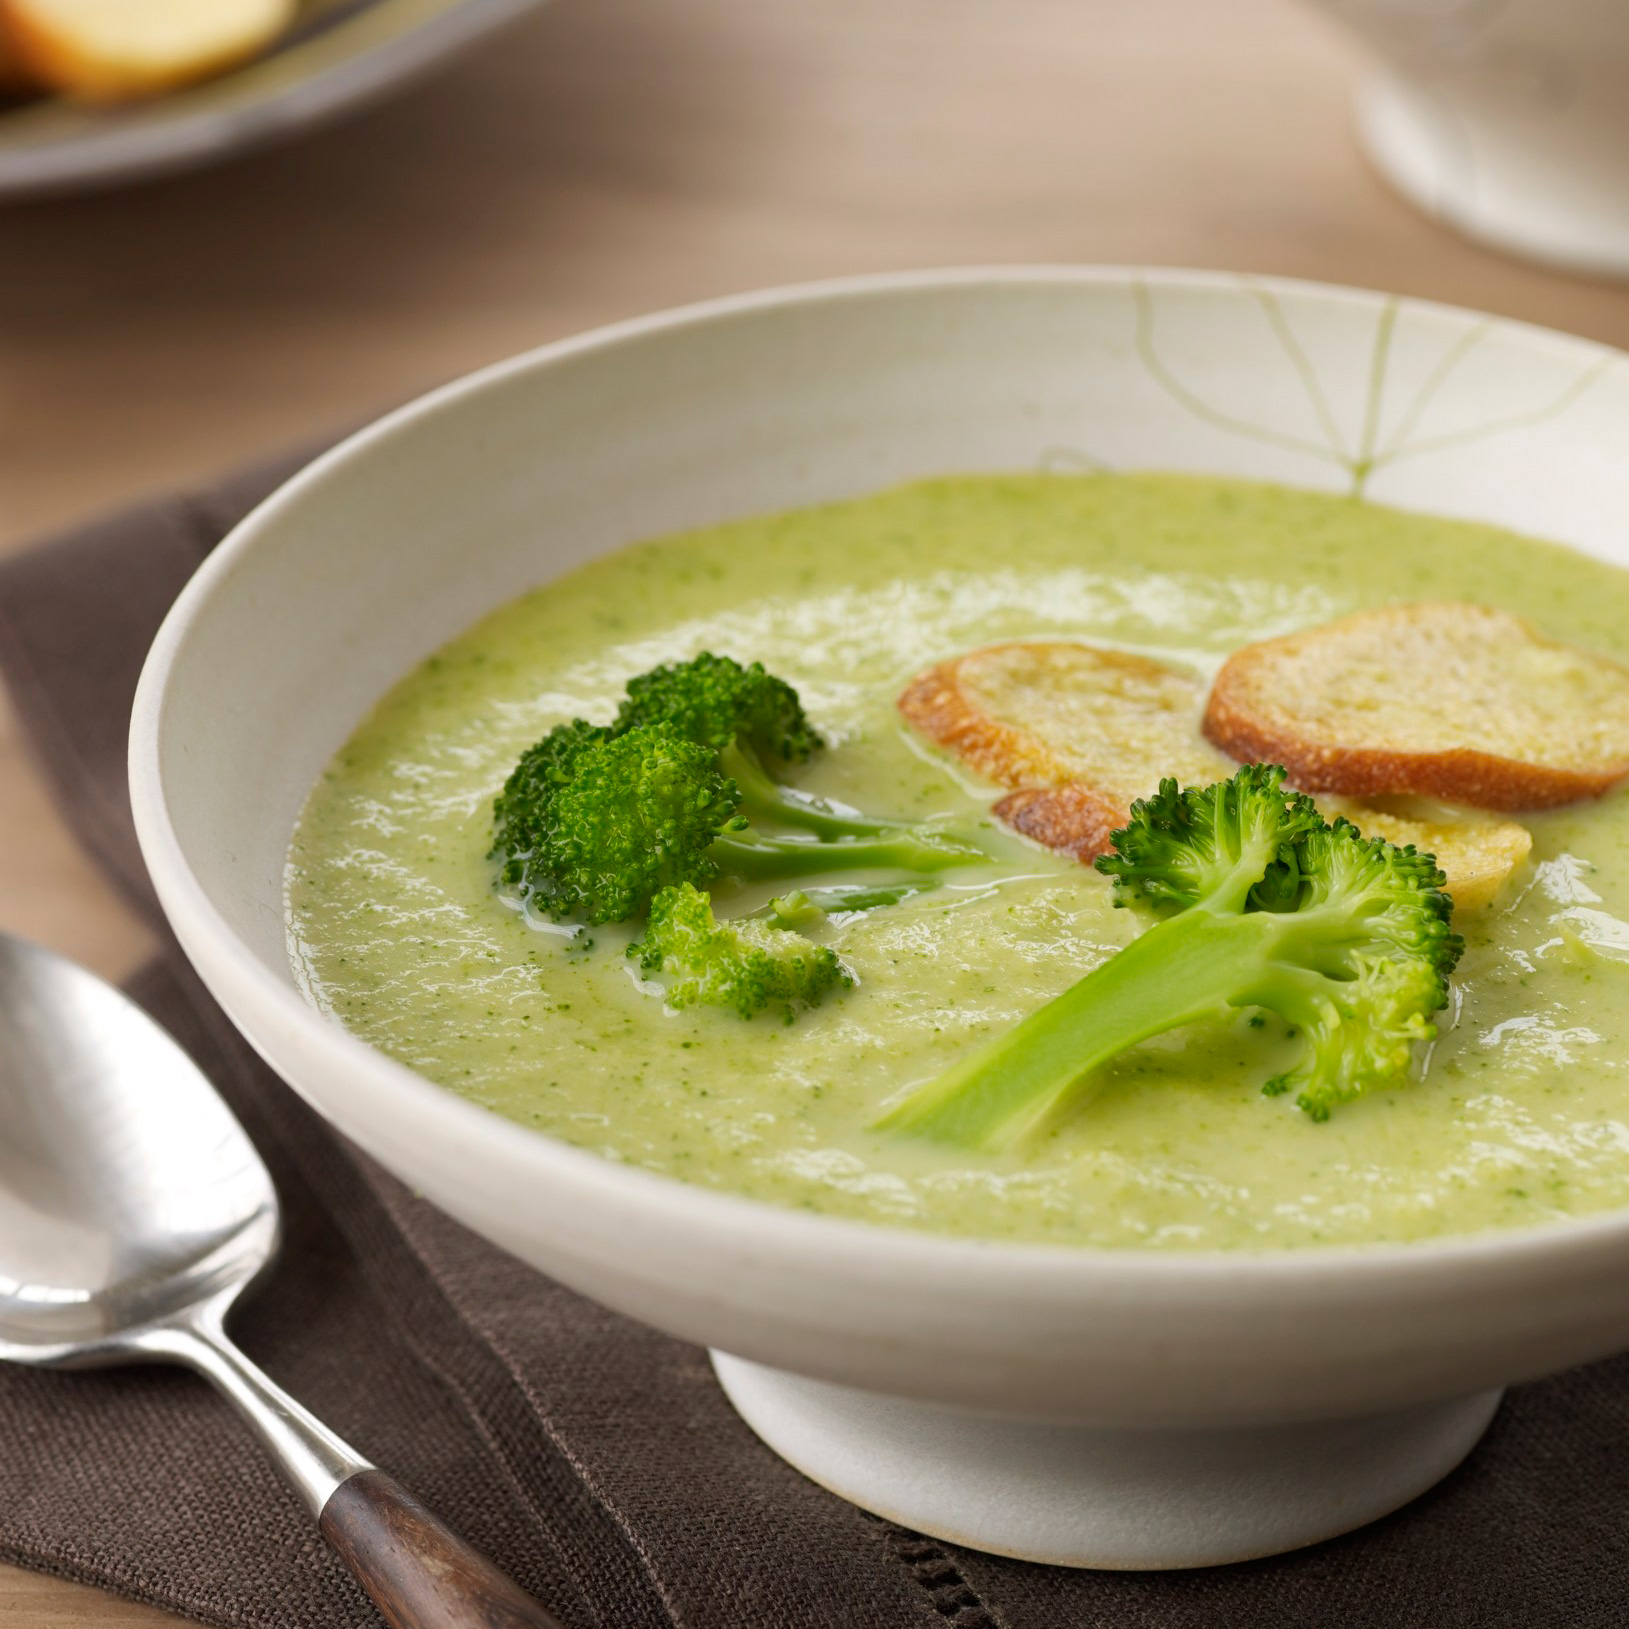 200911-r-creamy-broccoli-soup.jpg